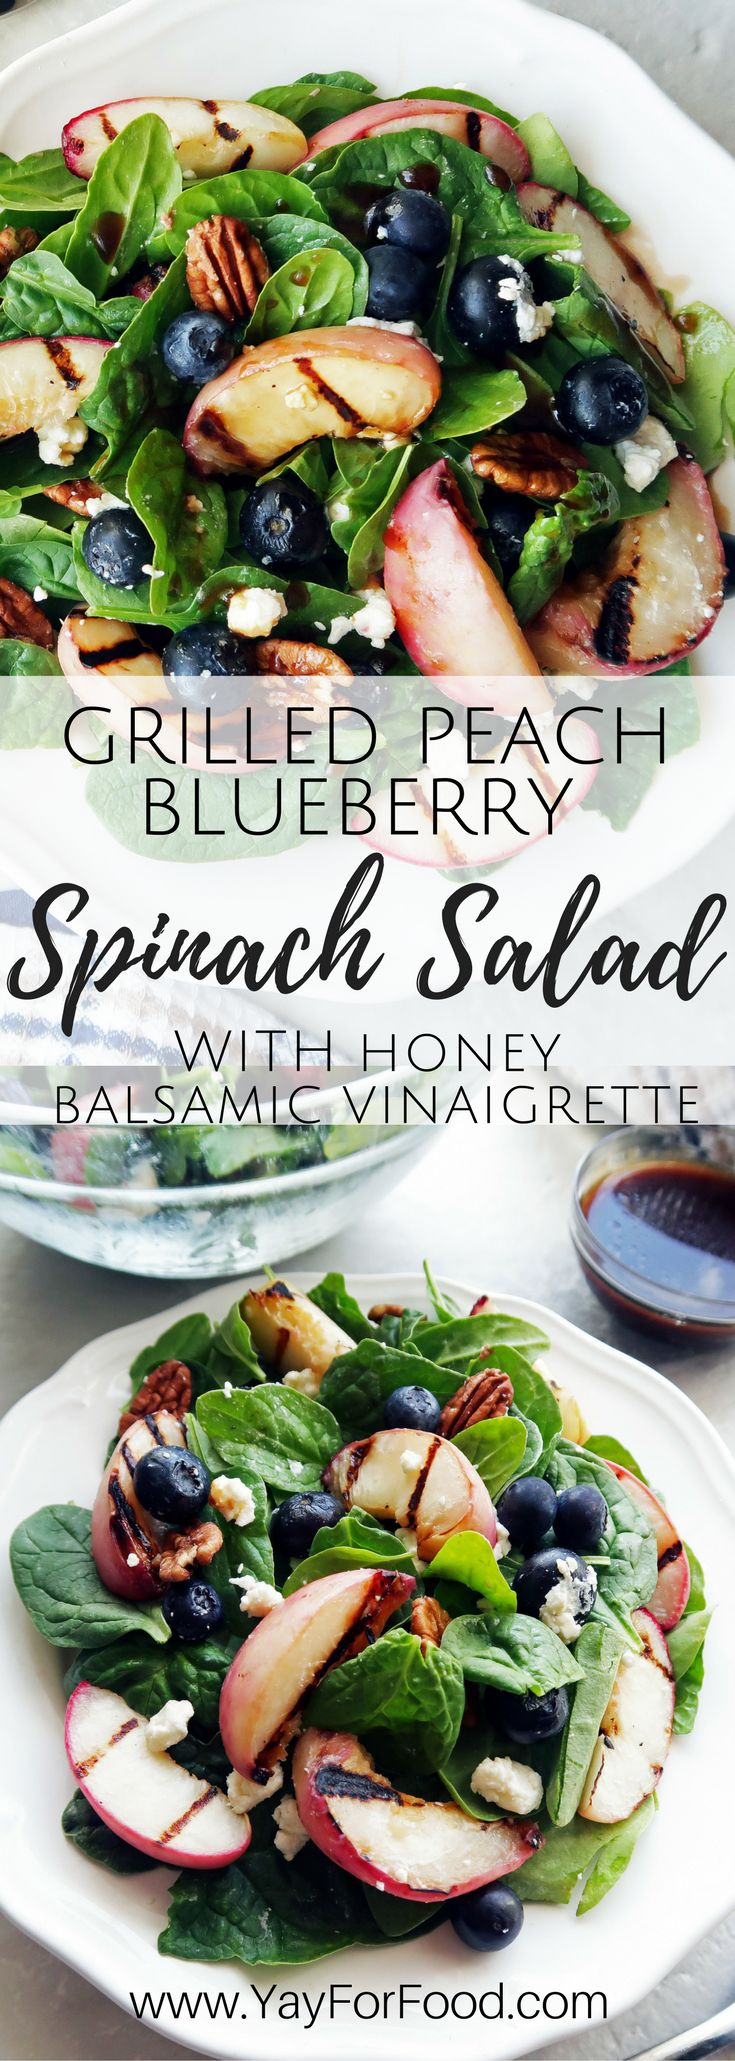 A fresh summer spinach salad featuring grilled peaches, blueberries, feta cheese, and pecans with a homemade honey balsamic vinaigrette!